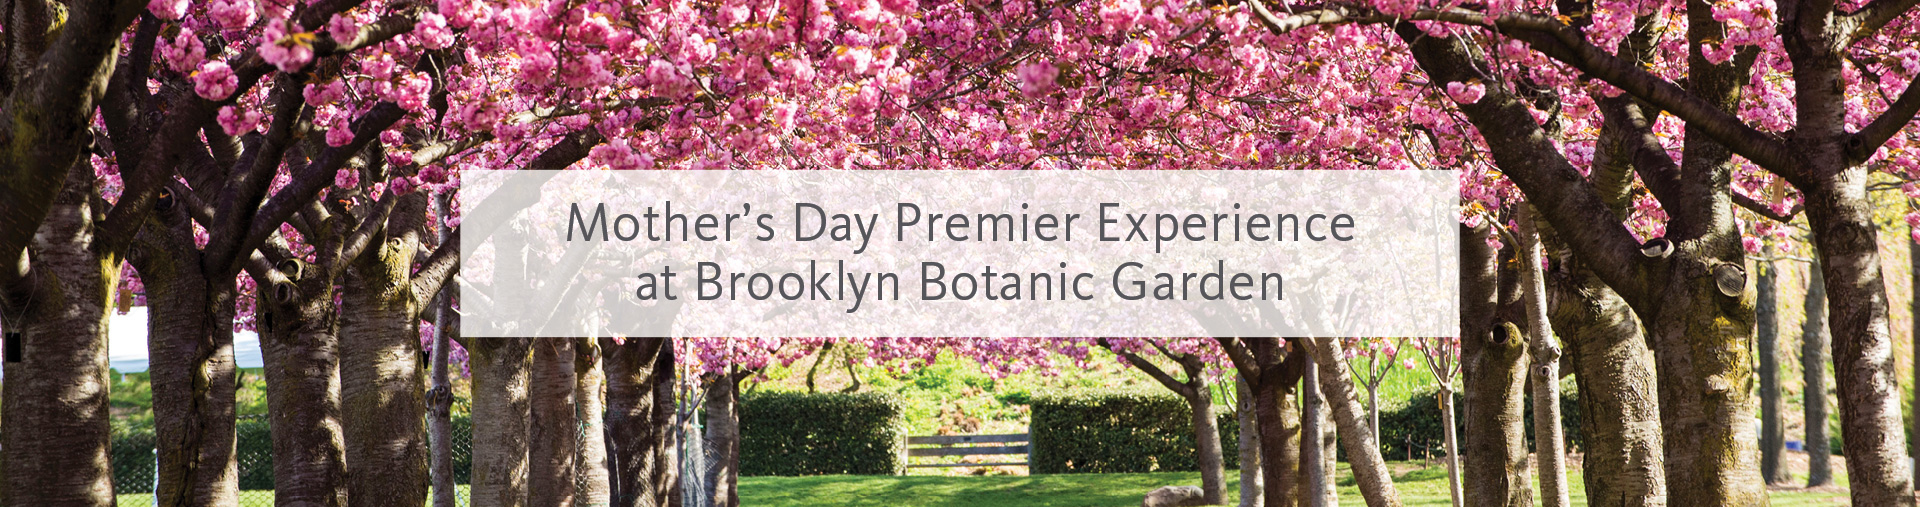 Mother's Day Premier Experience at Brooklyn Botanic Garden